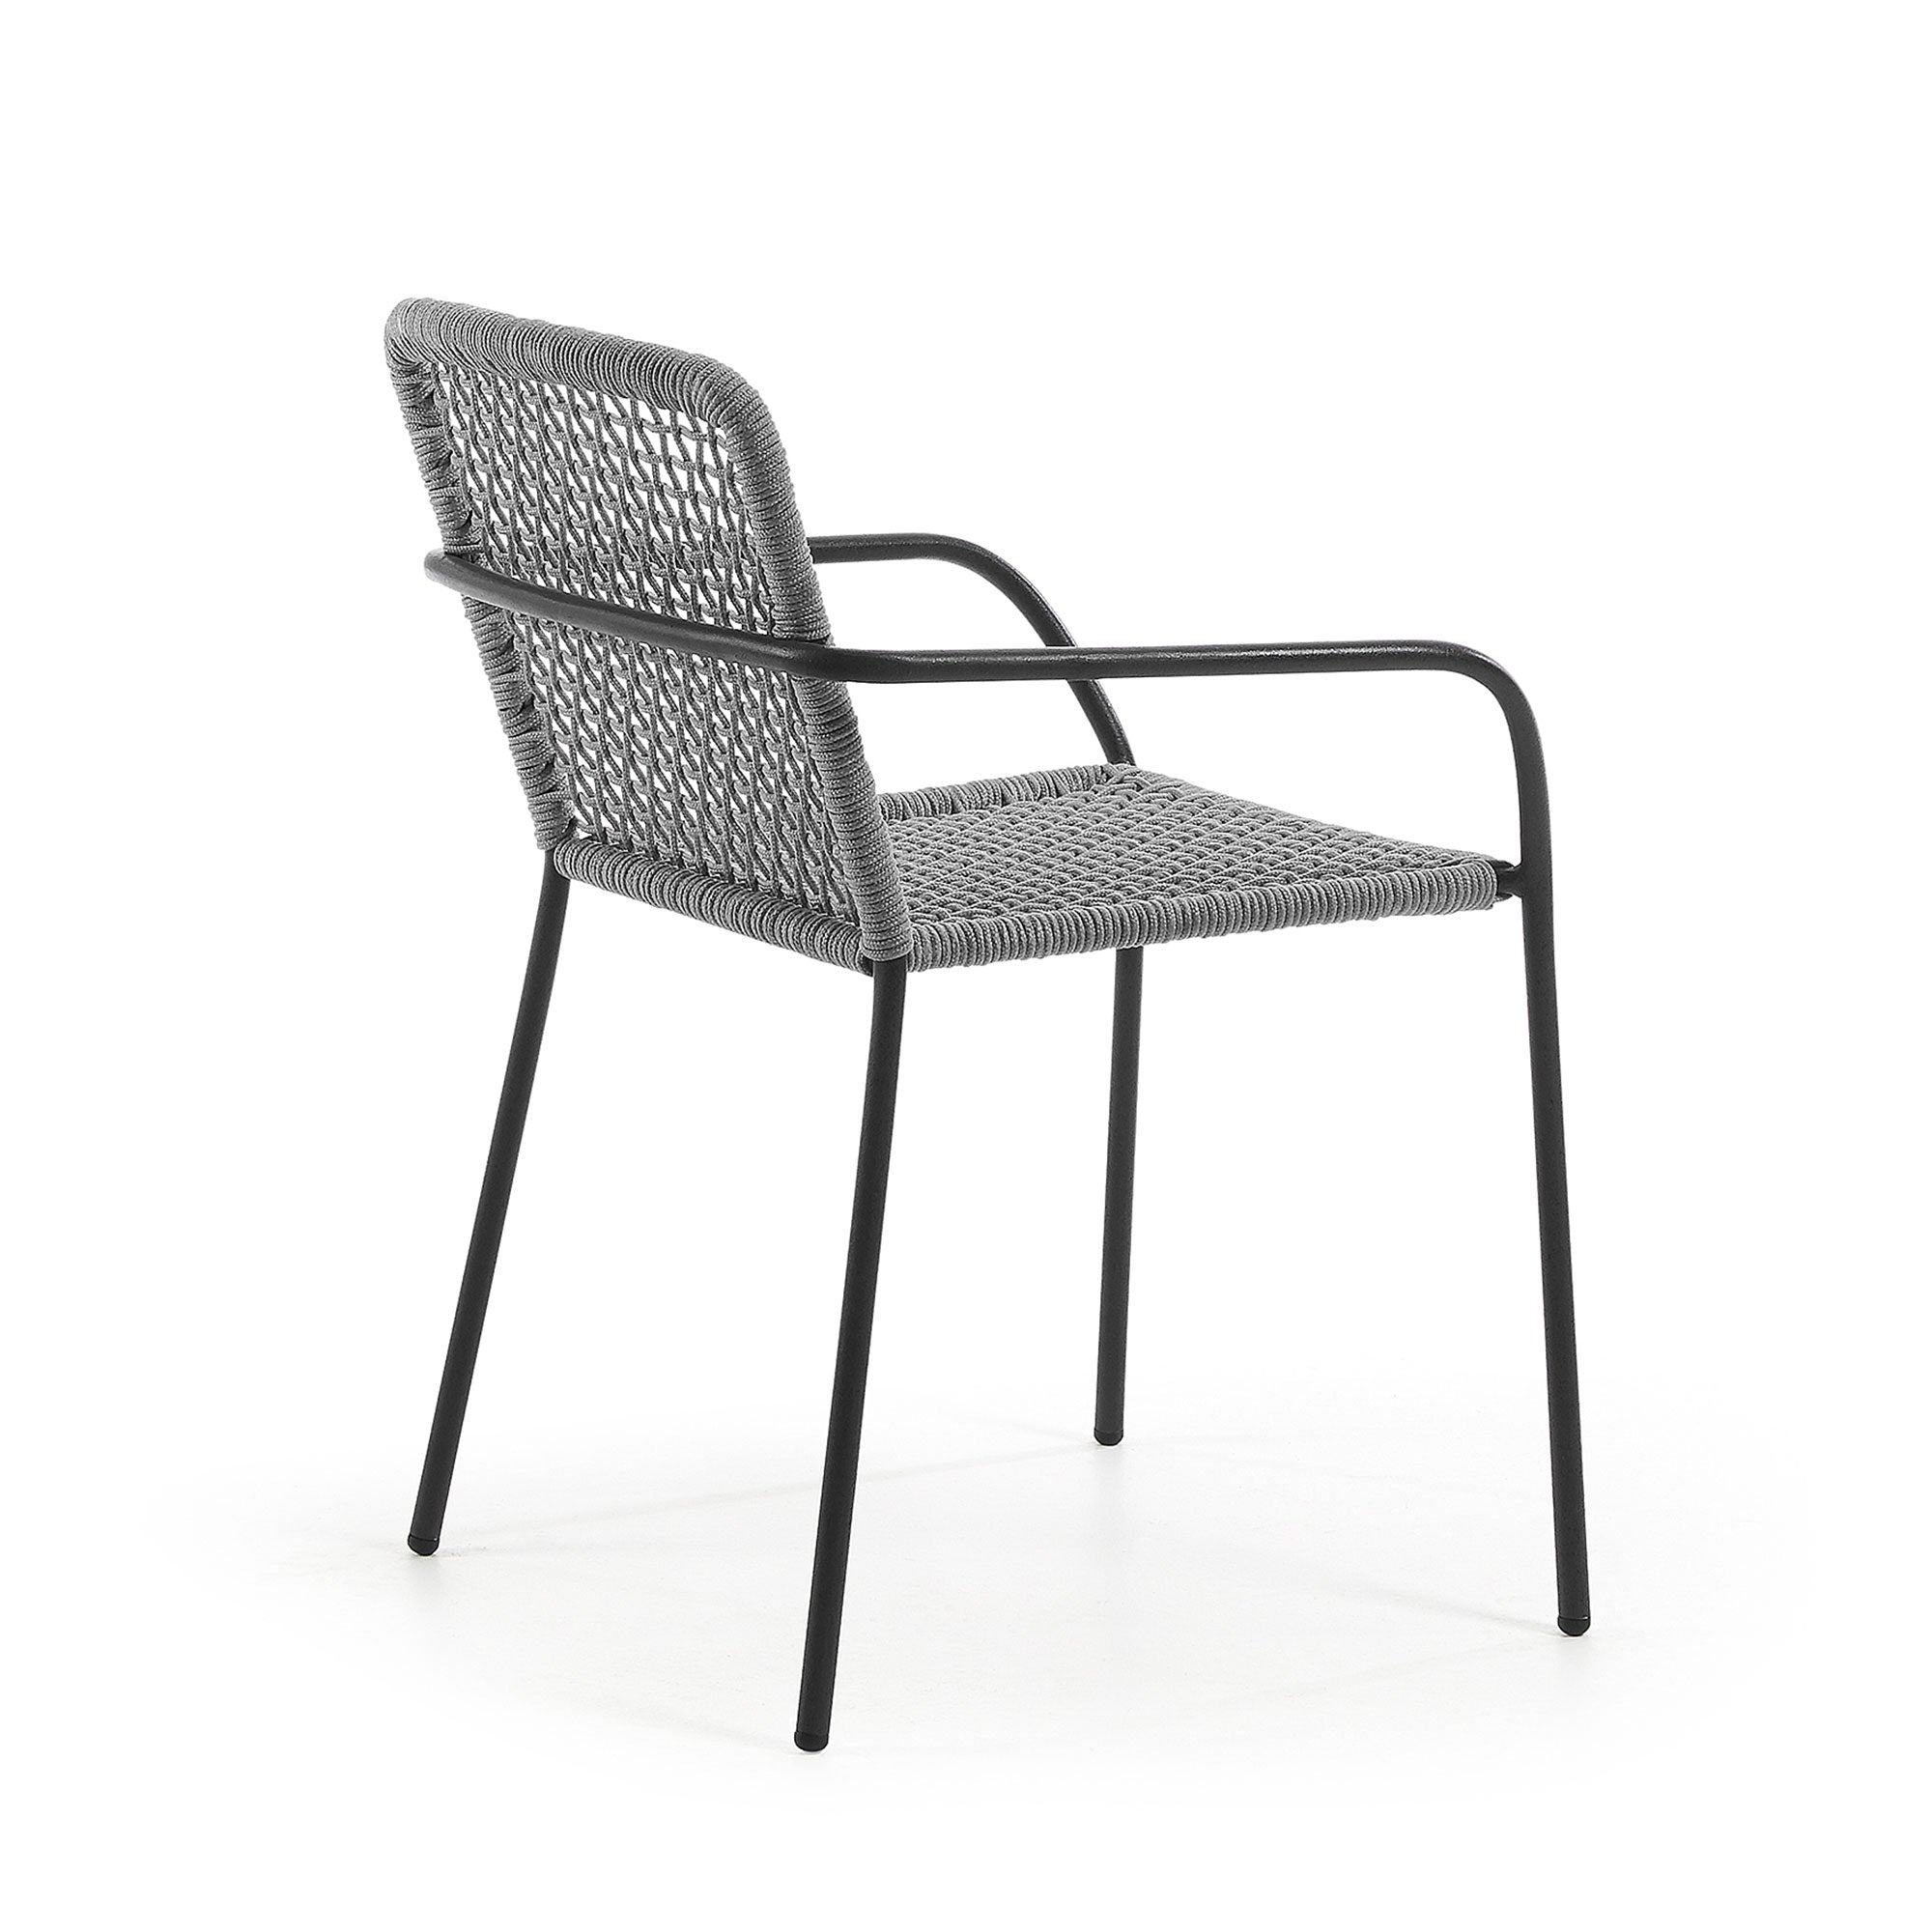 Bonce Armchair - Grey, Chair - Home-Buy Interiors